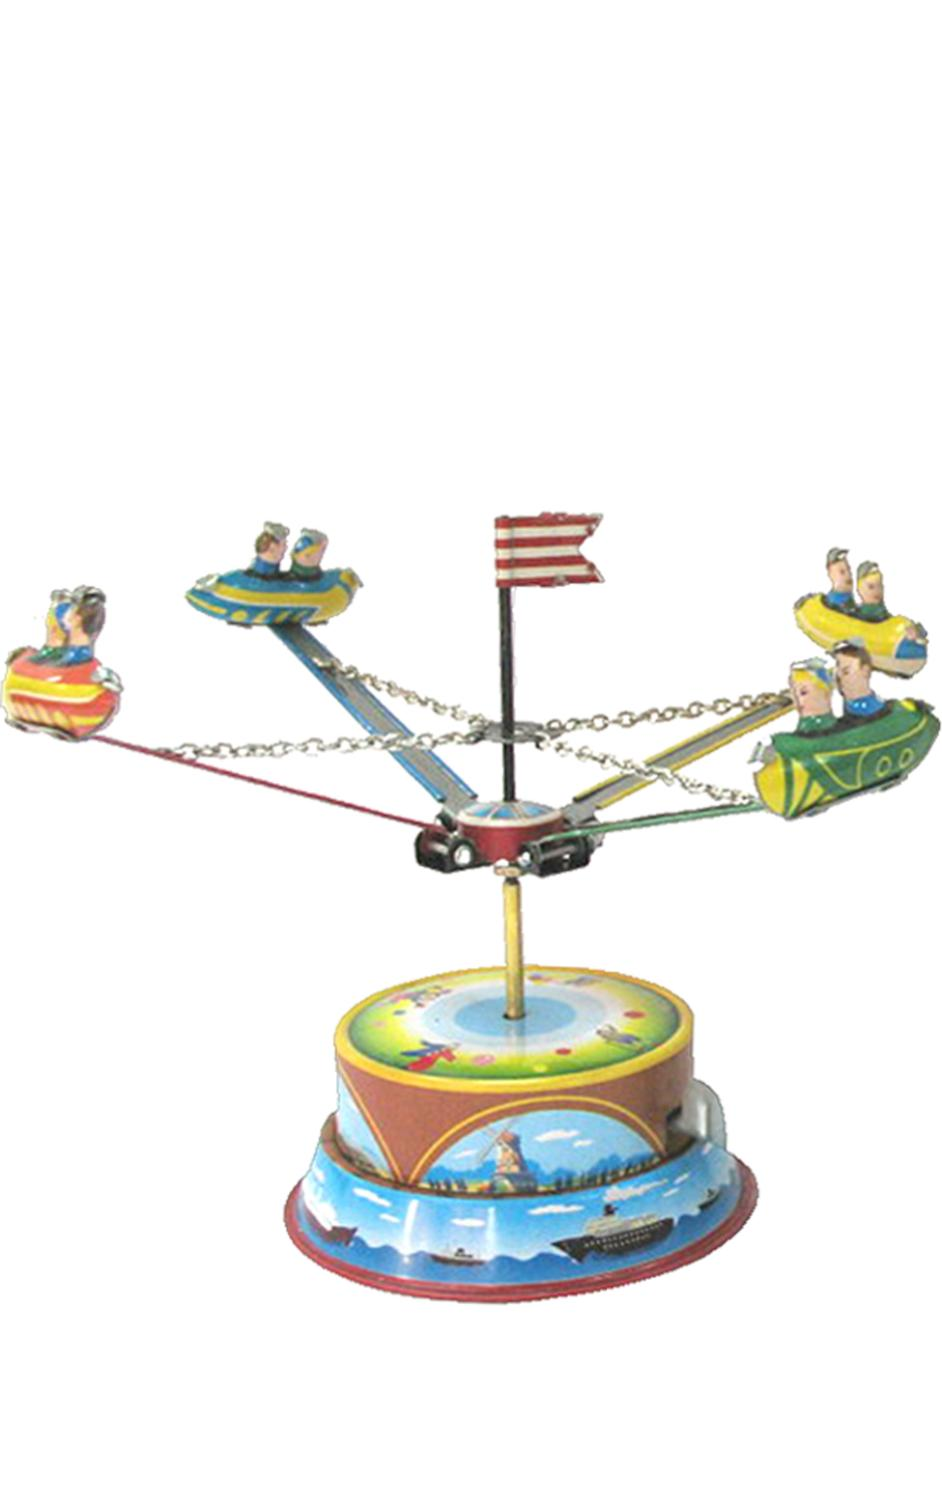 MM266 - Collectible Tin Toy - Carousel - 4.75